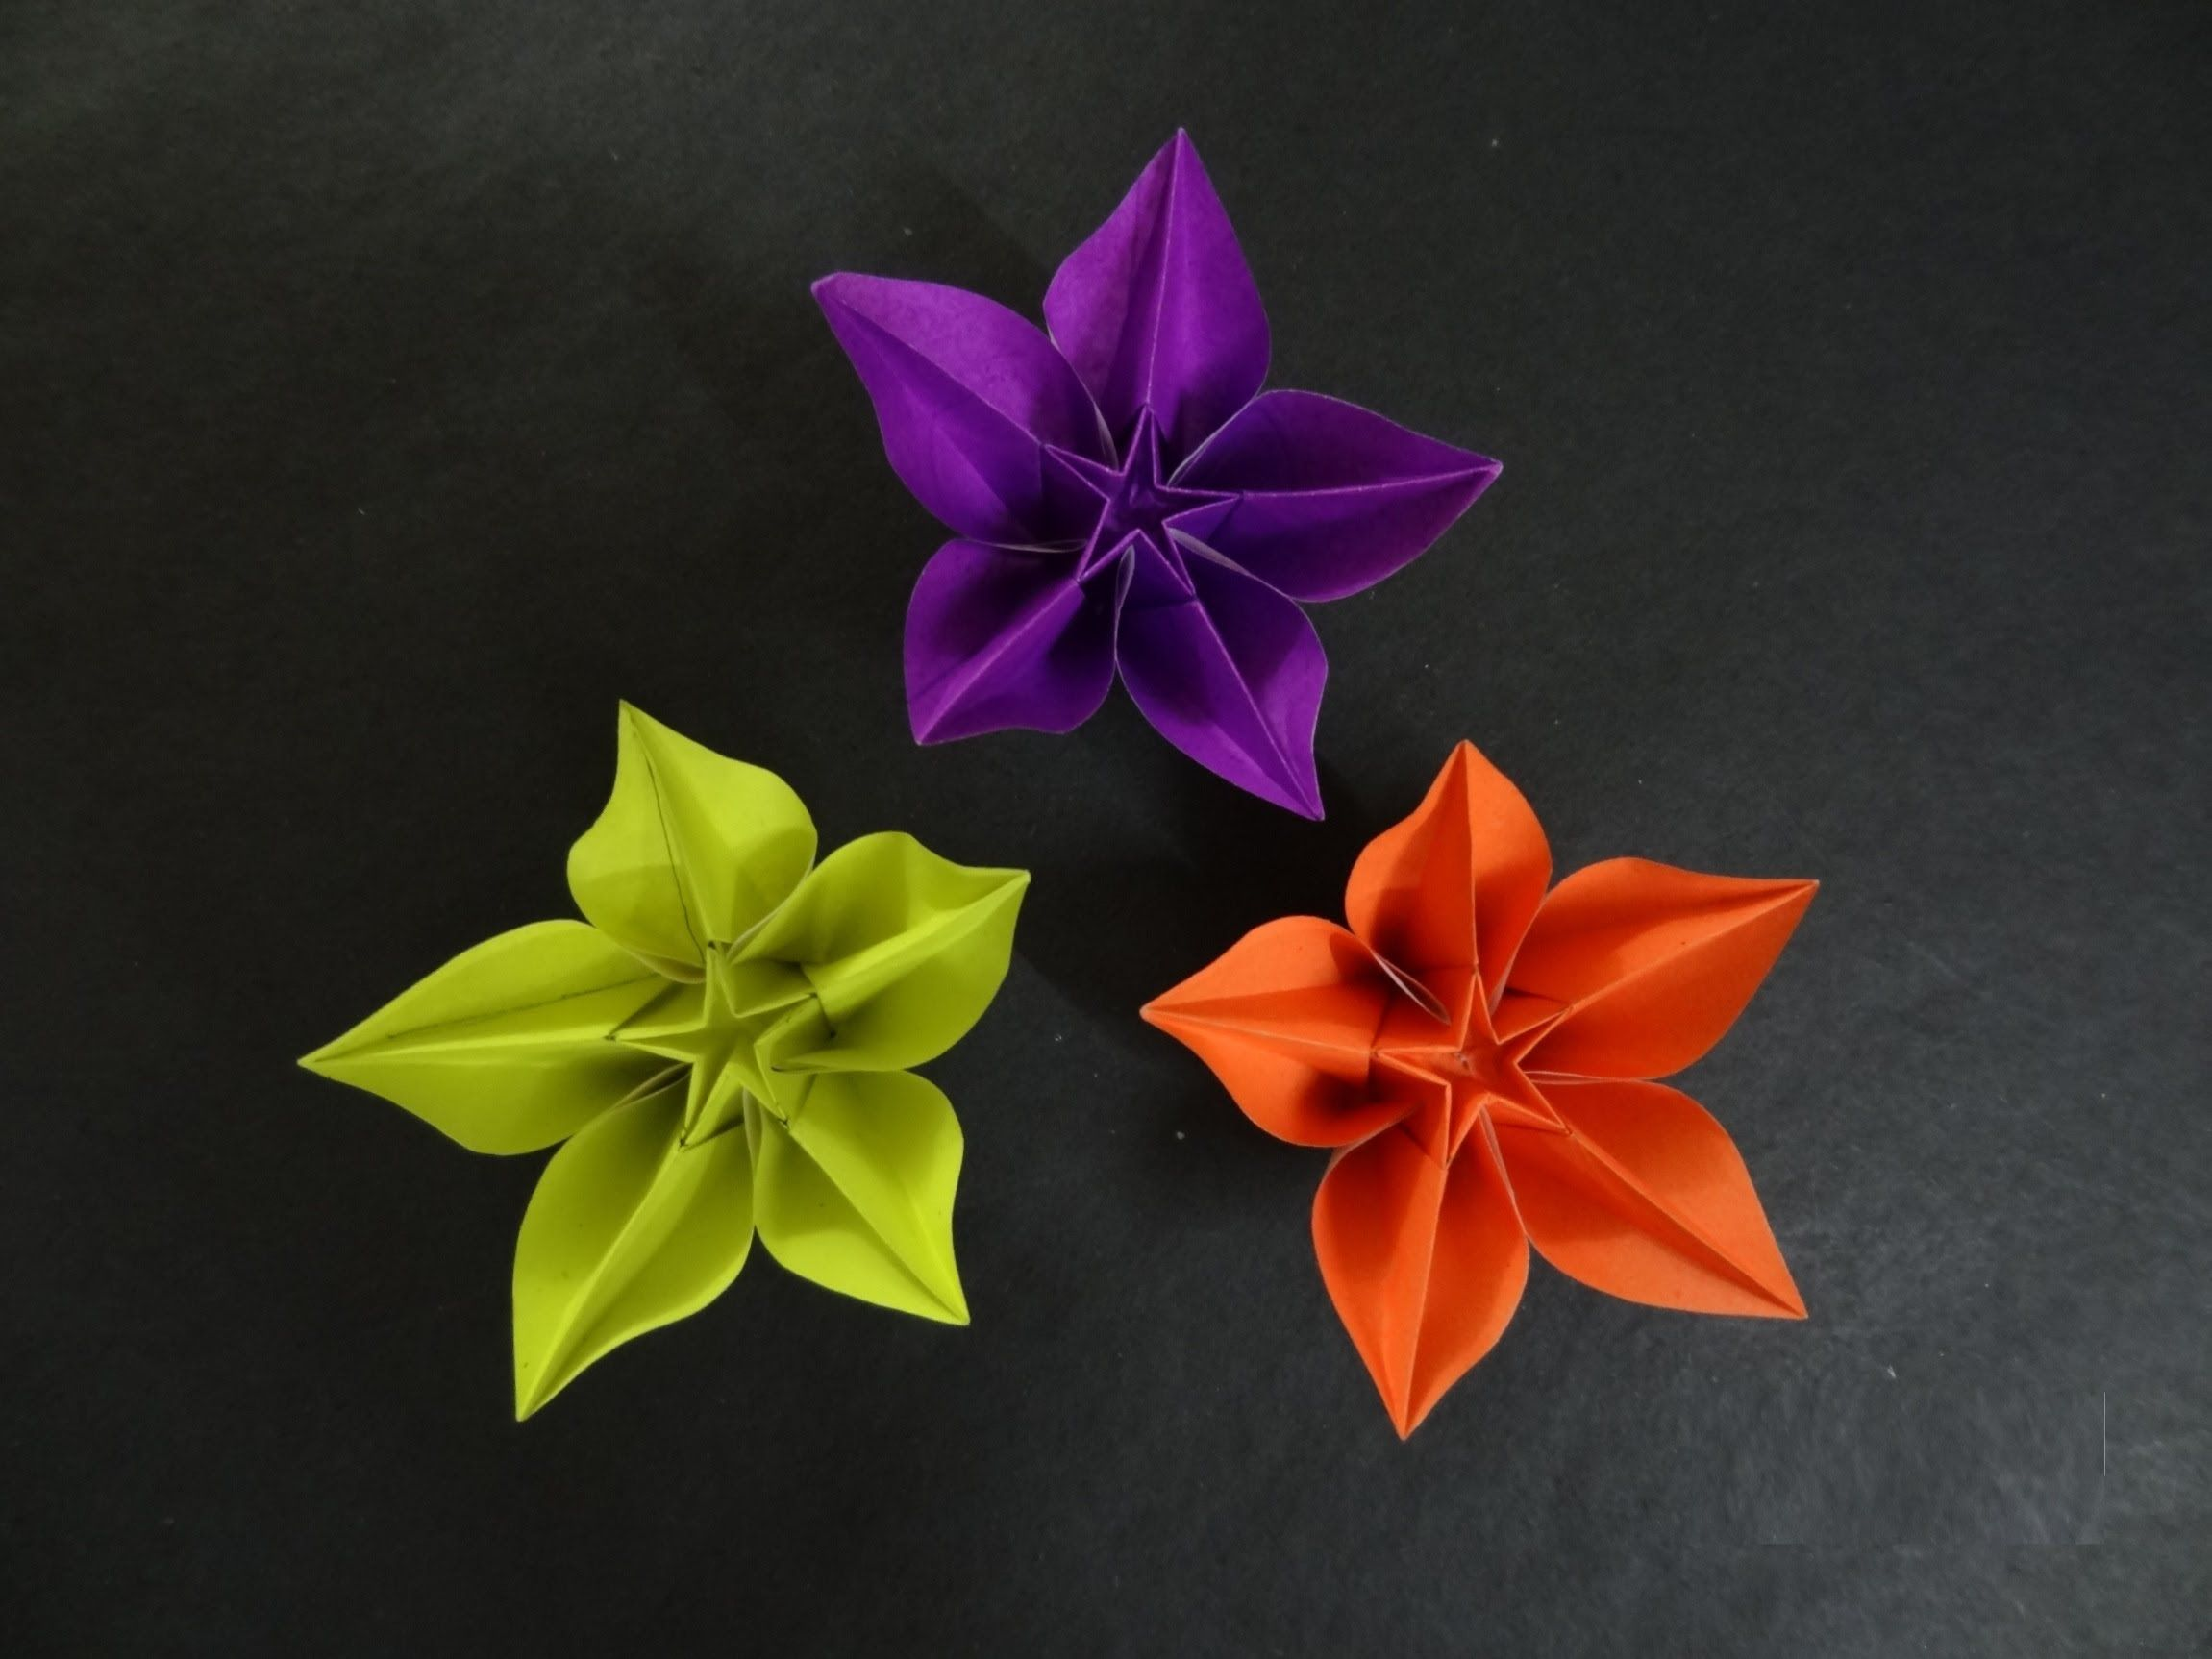 carambola flower origami diagram prodigy brake controller wiring tutorial how to fold